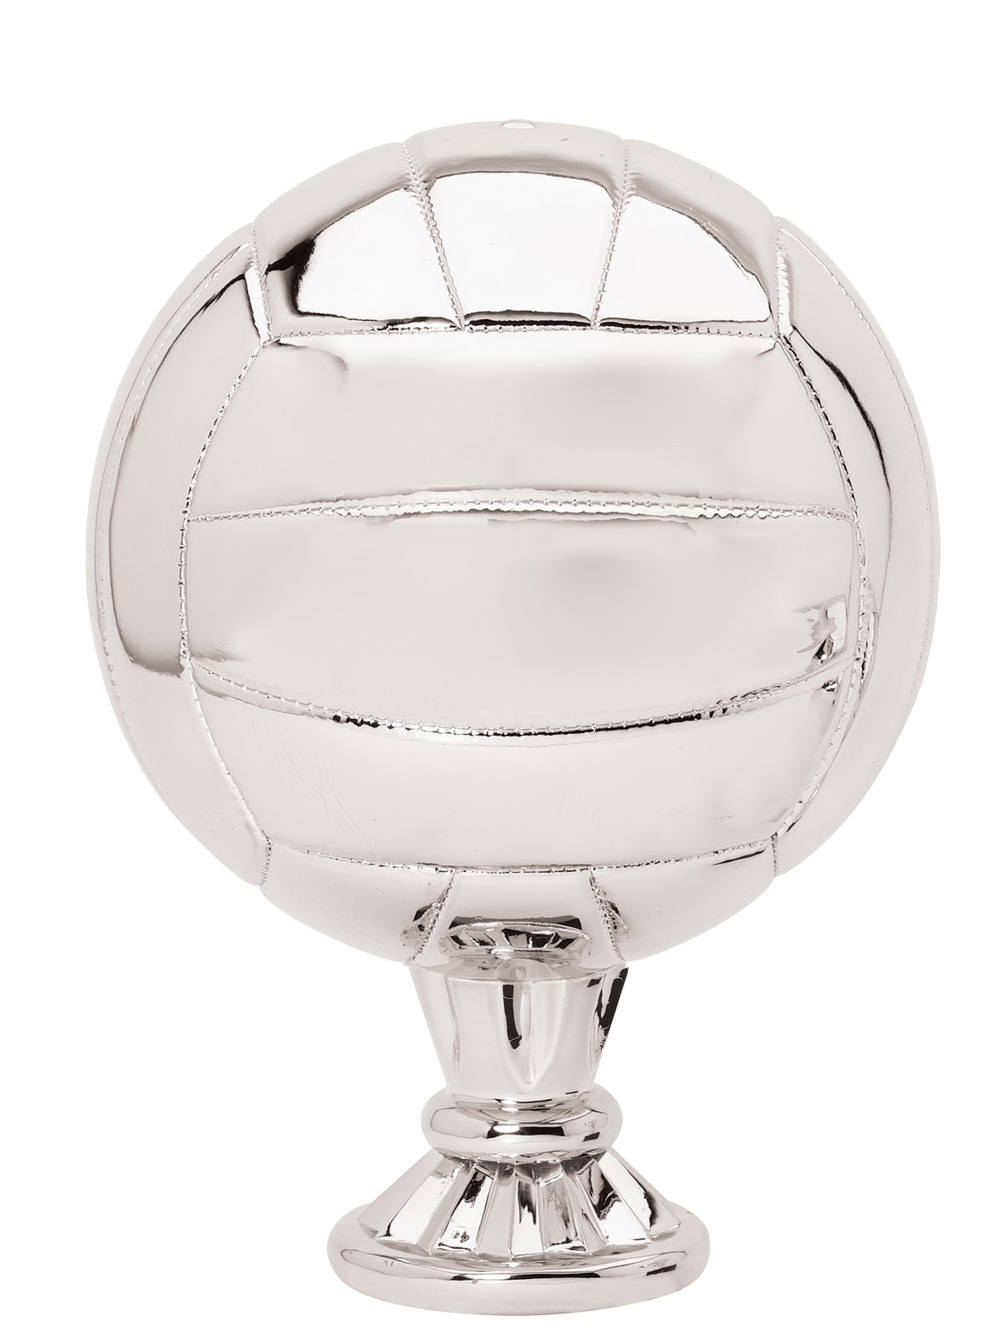 "Volleyball - Silver   RG3217 - 11.5"" tall  Price = $109"